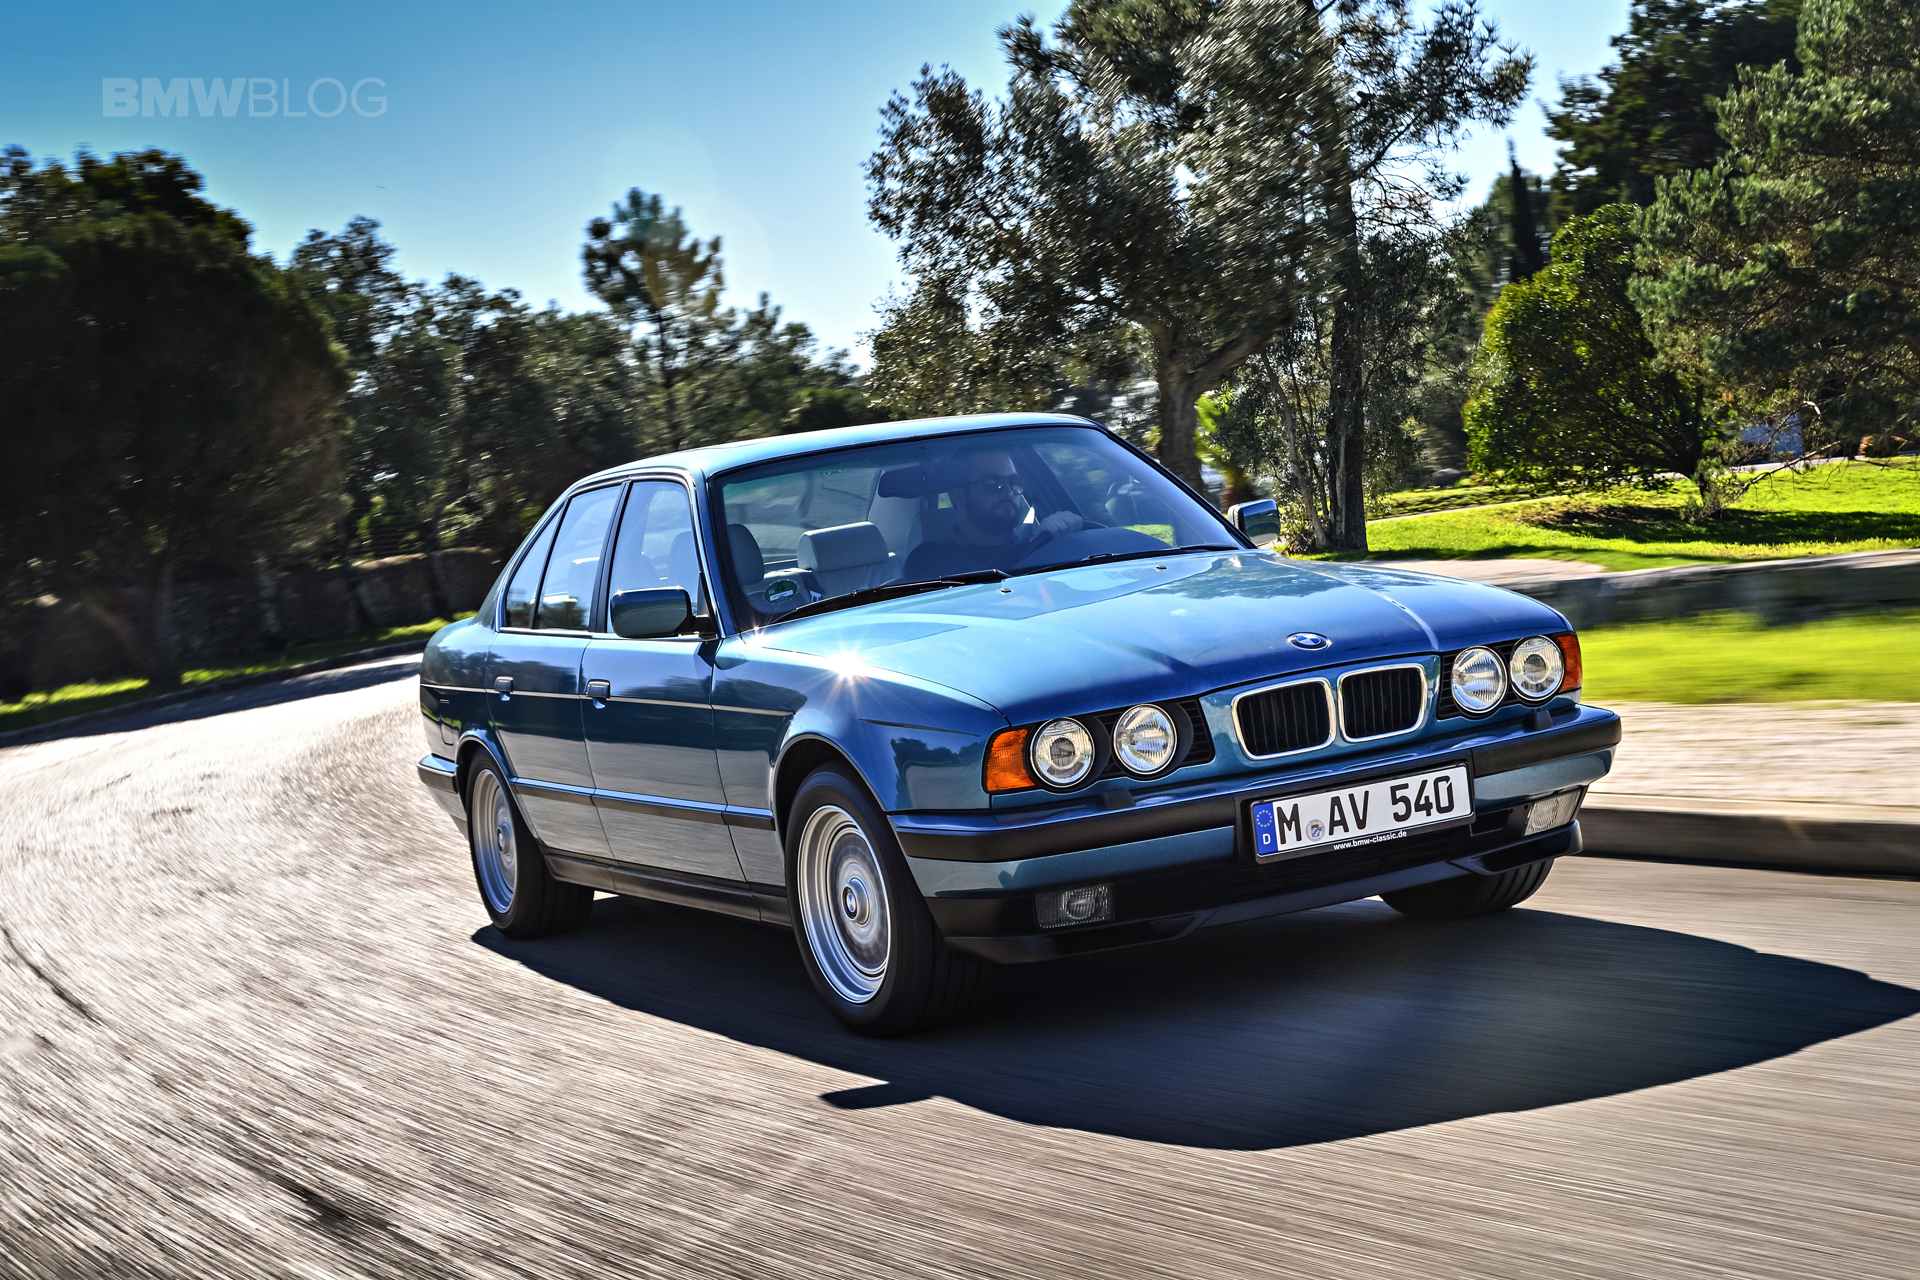 Beautiful Photoshoot With The Bmw E34 5 Series